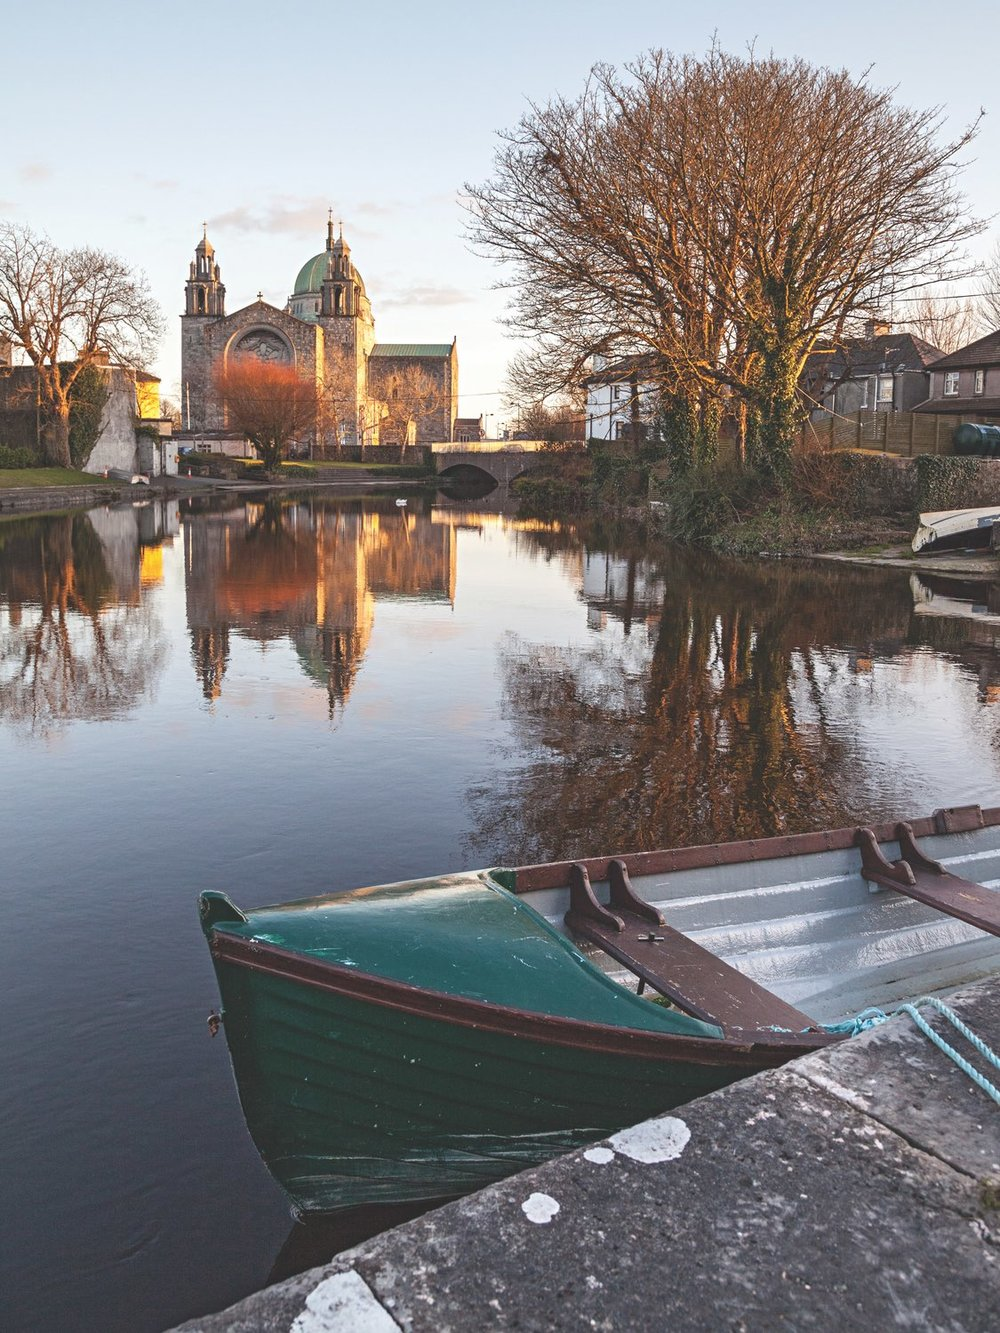 A view of Galway Cathedral reflecting beautifully in the Eglinton Canal. Photo by Nicholas Grundy